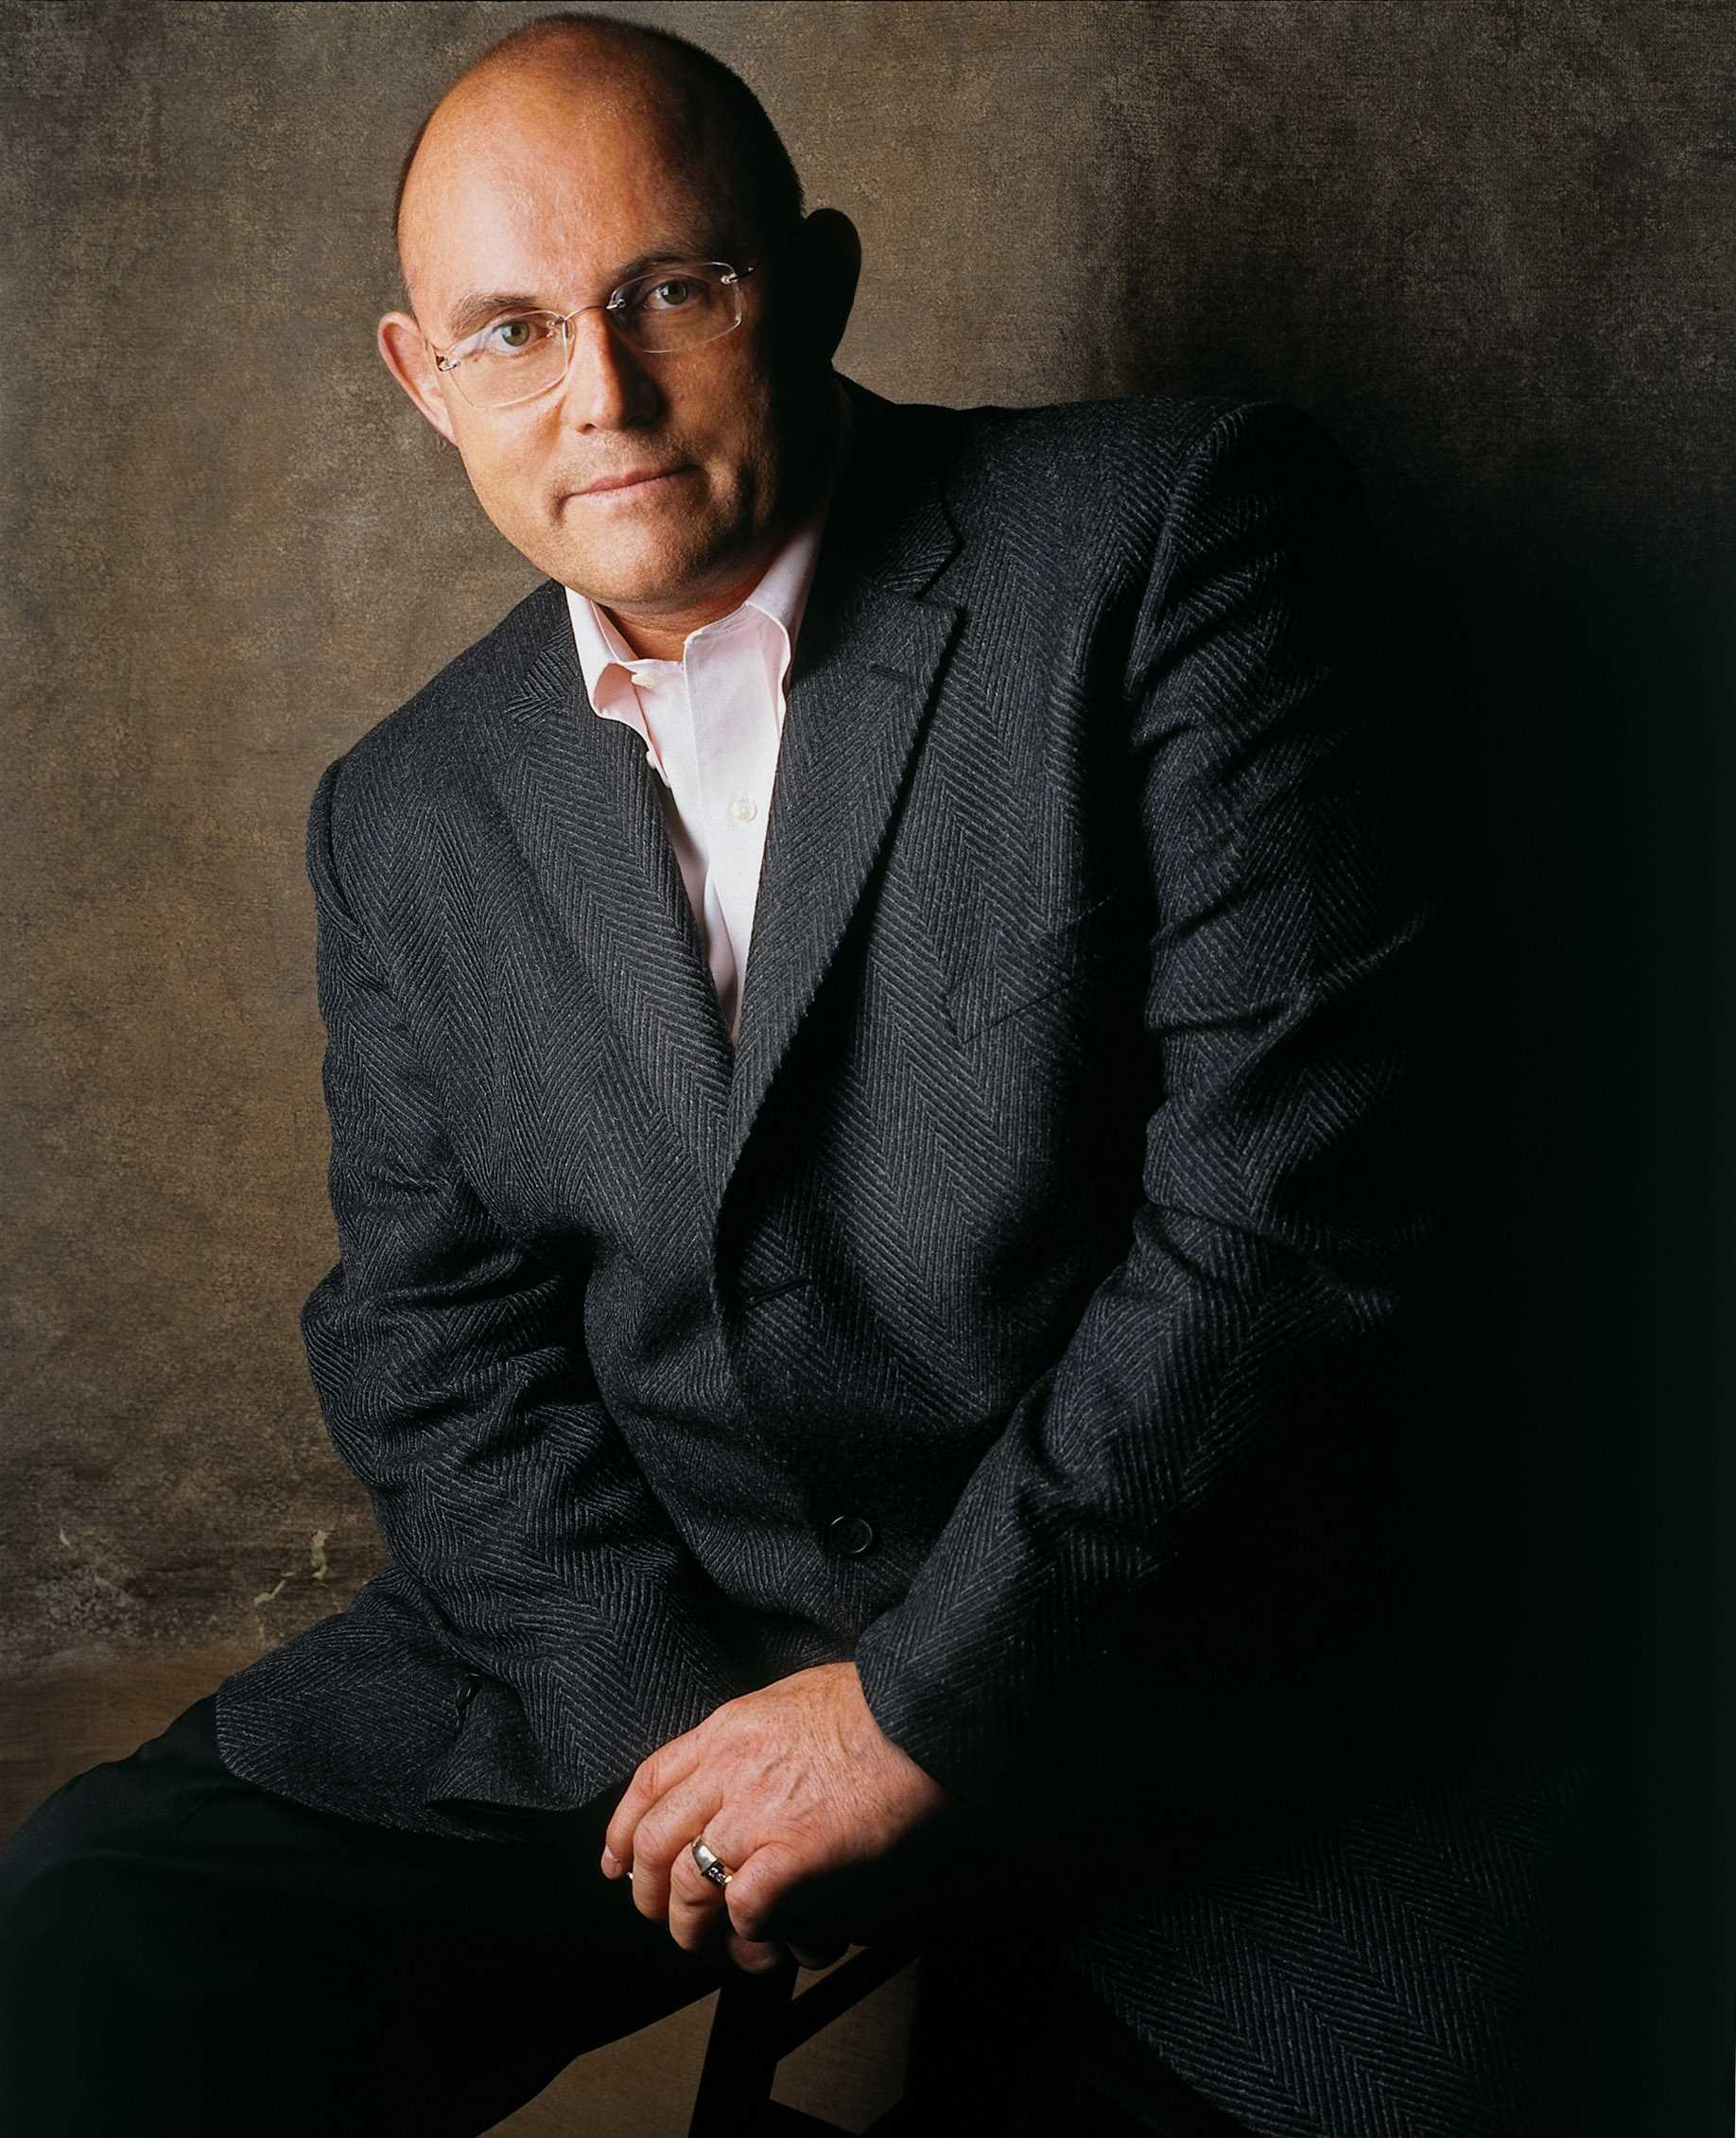 Irish Tenor Ronan Tynan performs at Turnage Theater in Washington